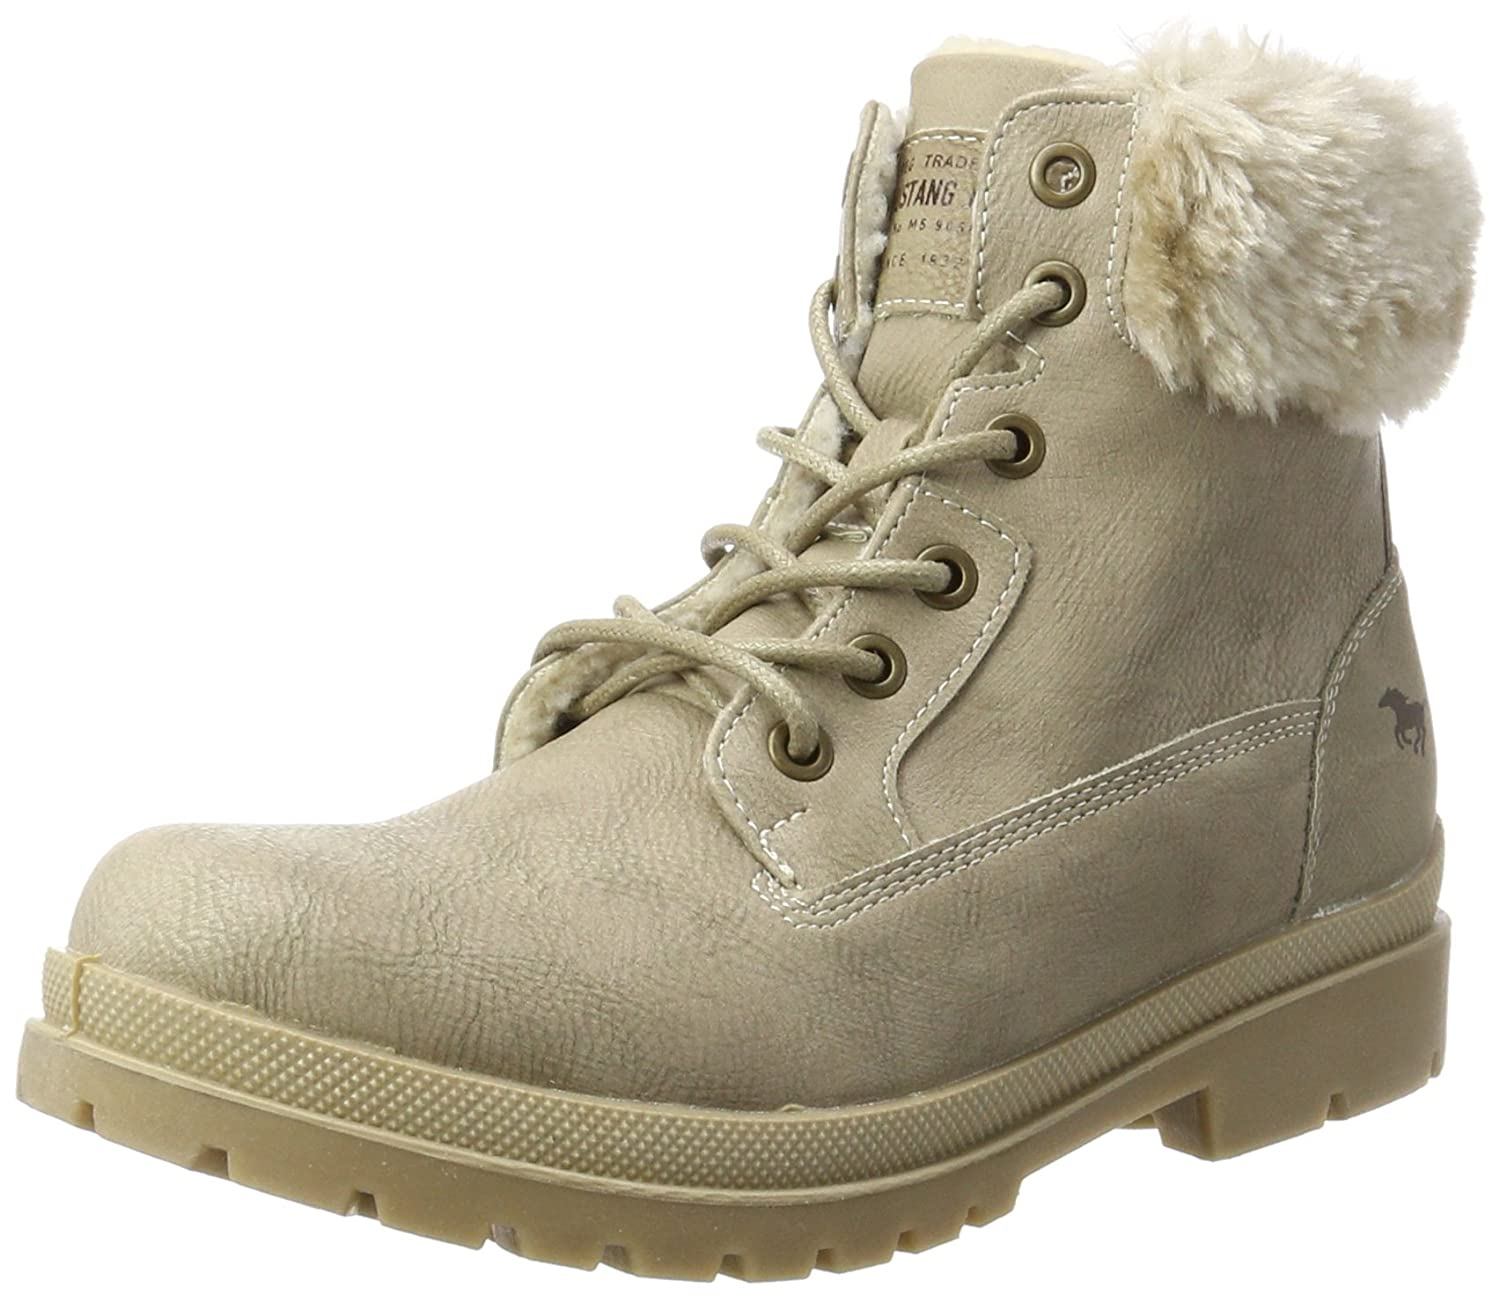 Mustang 1207-607, Bottes Femme, Gris Bottes Blanc Cassé Mustang Blanc (Ivory) 8807983 - latesttechnology.space